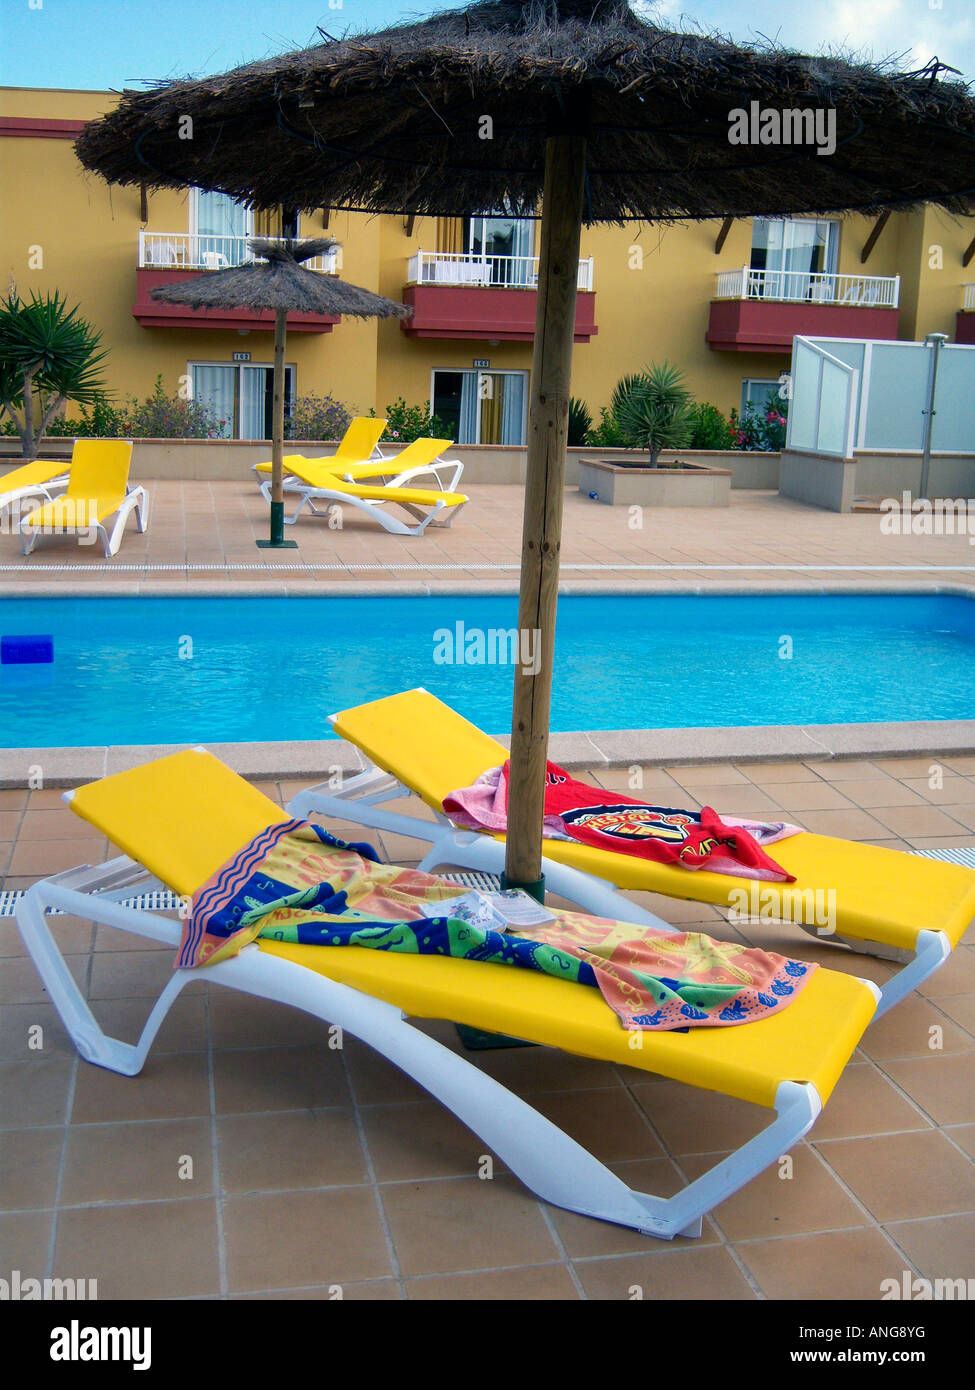 Unoccupied loungers with towels on to reserve them in a hotel. Photo Willy Matheisl - Stock Image